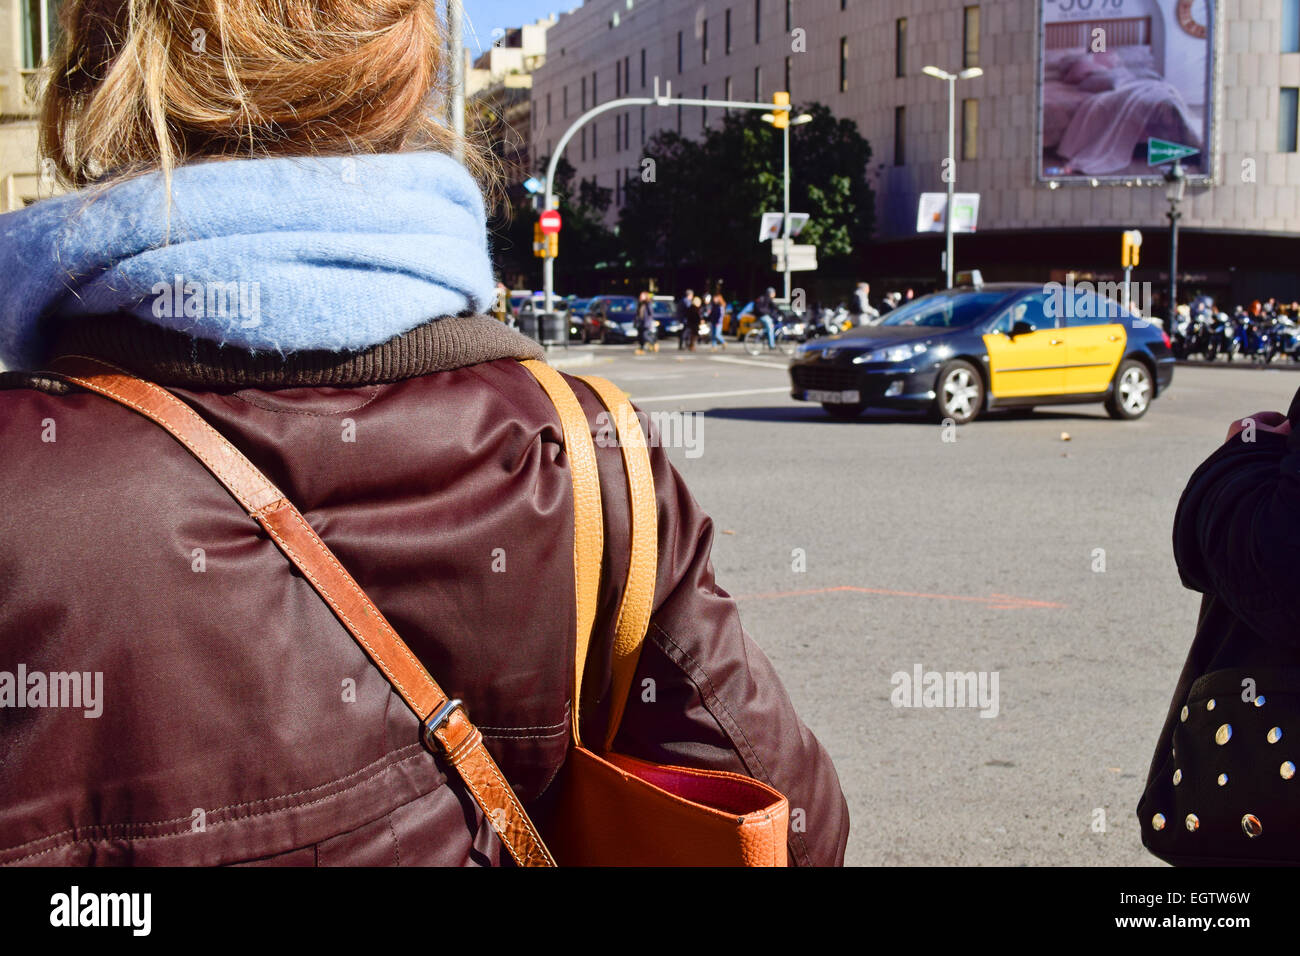 People waiting at a stoplight. Barcelona, Catalonia, Spain - Stock Image